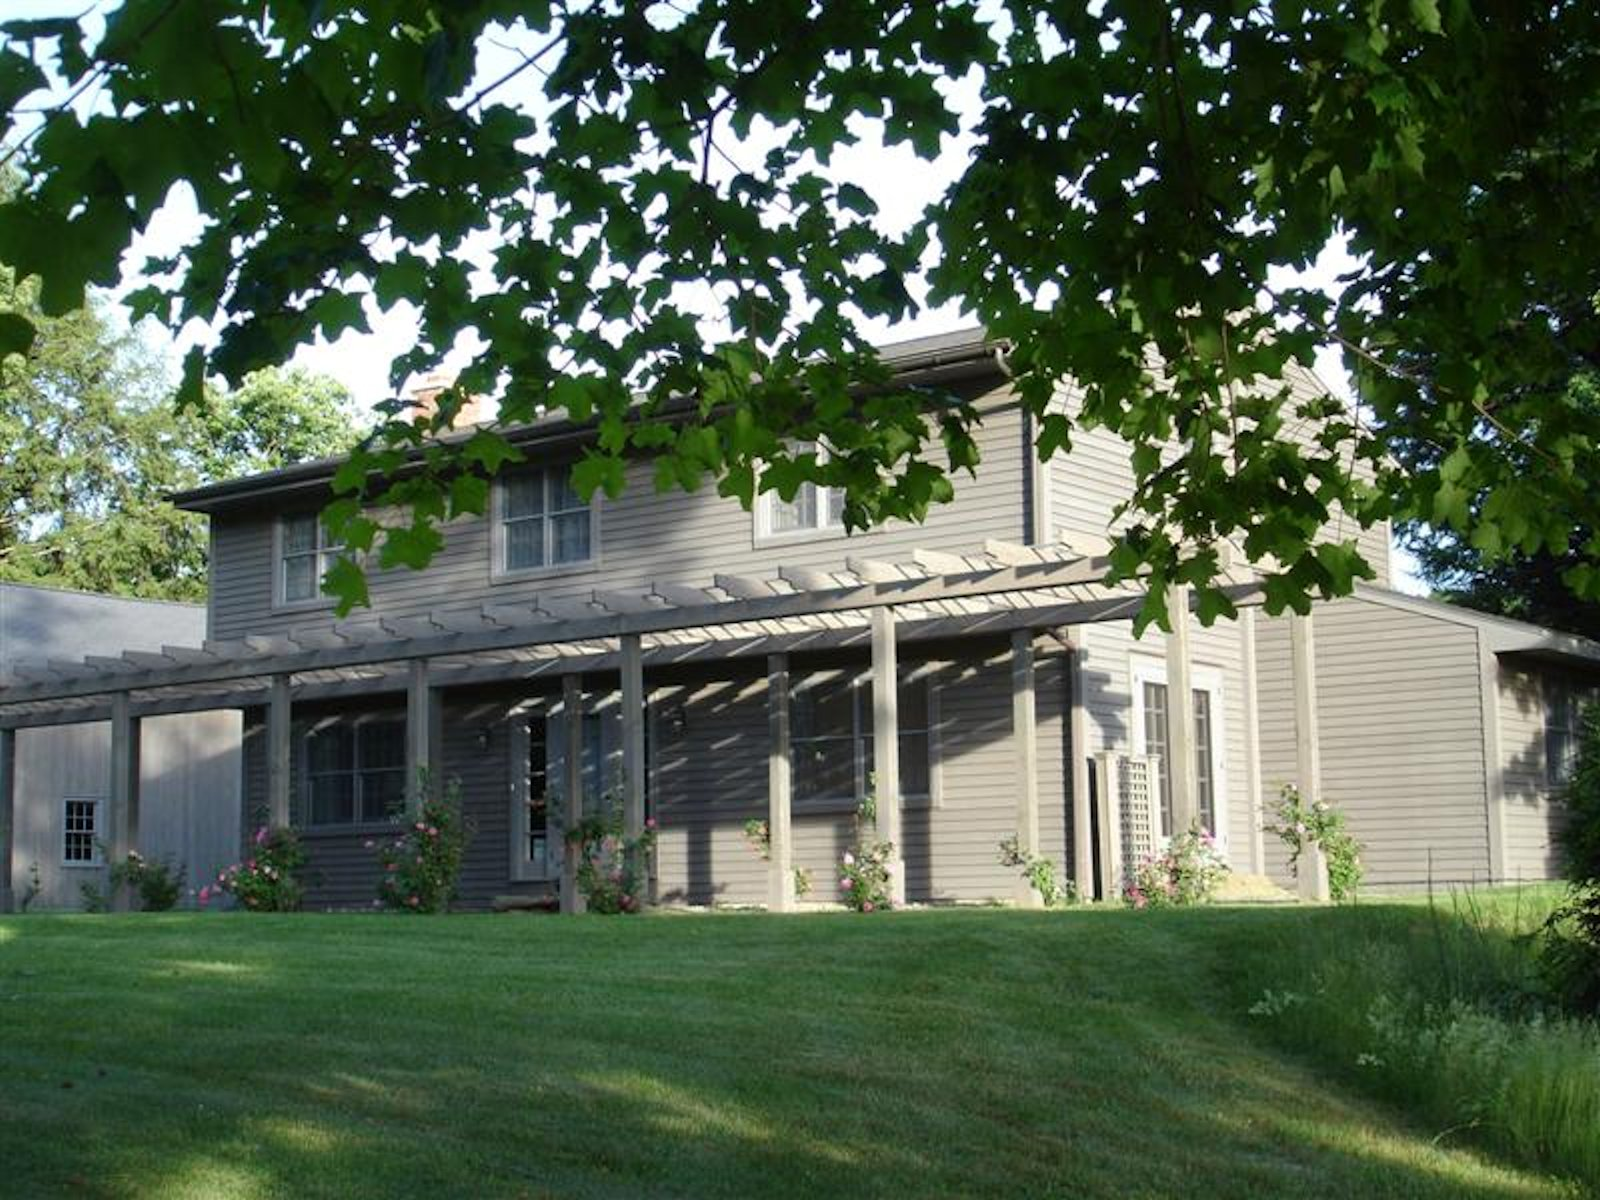 Maison unifamiliale pour l à louer à Field House 116 Canoe Hill Road Millbrook, New York 12545 États-Unis